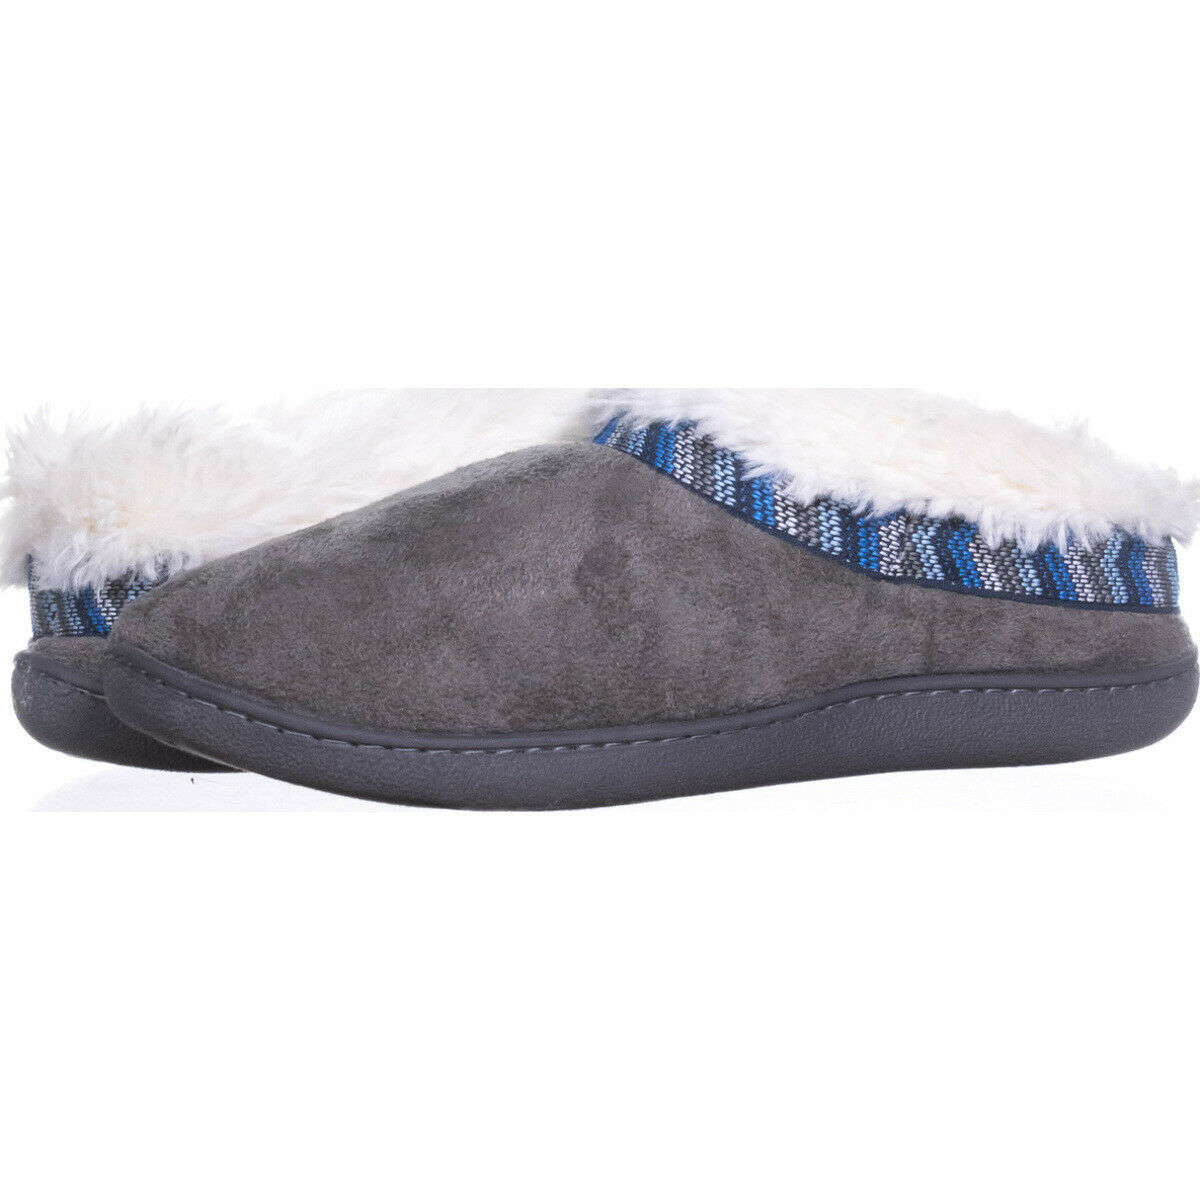 Primary image for Dr. Scholls Tatum Warm Slippers 711, Grey, 7 US / 37 EU